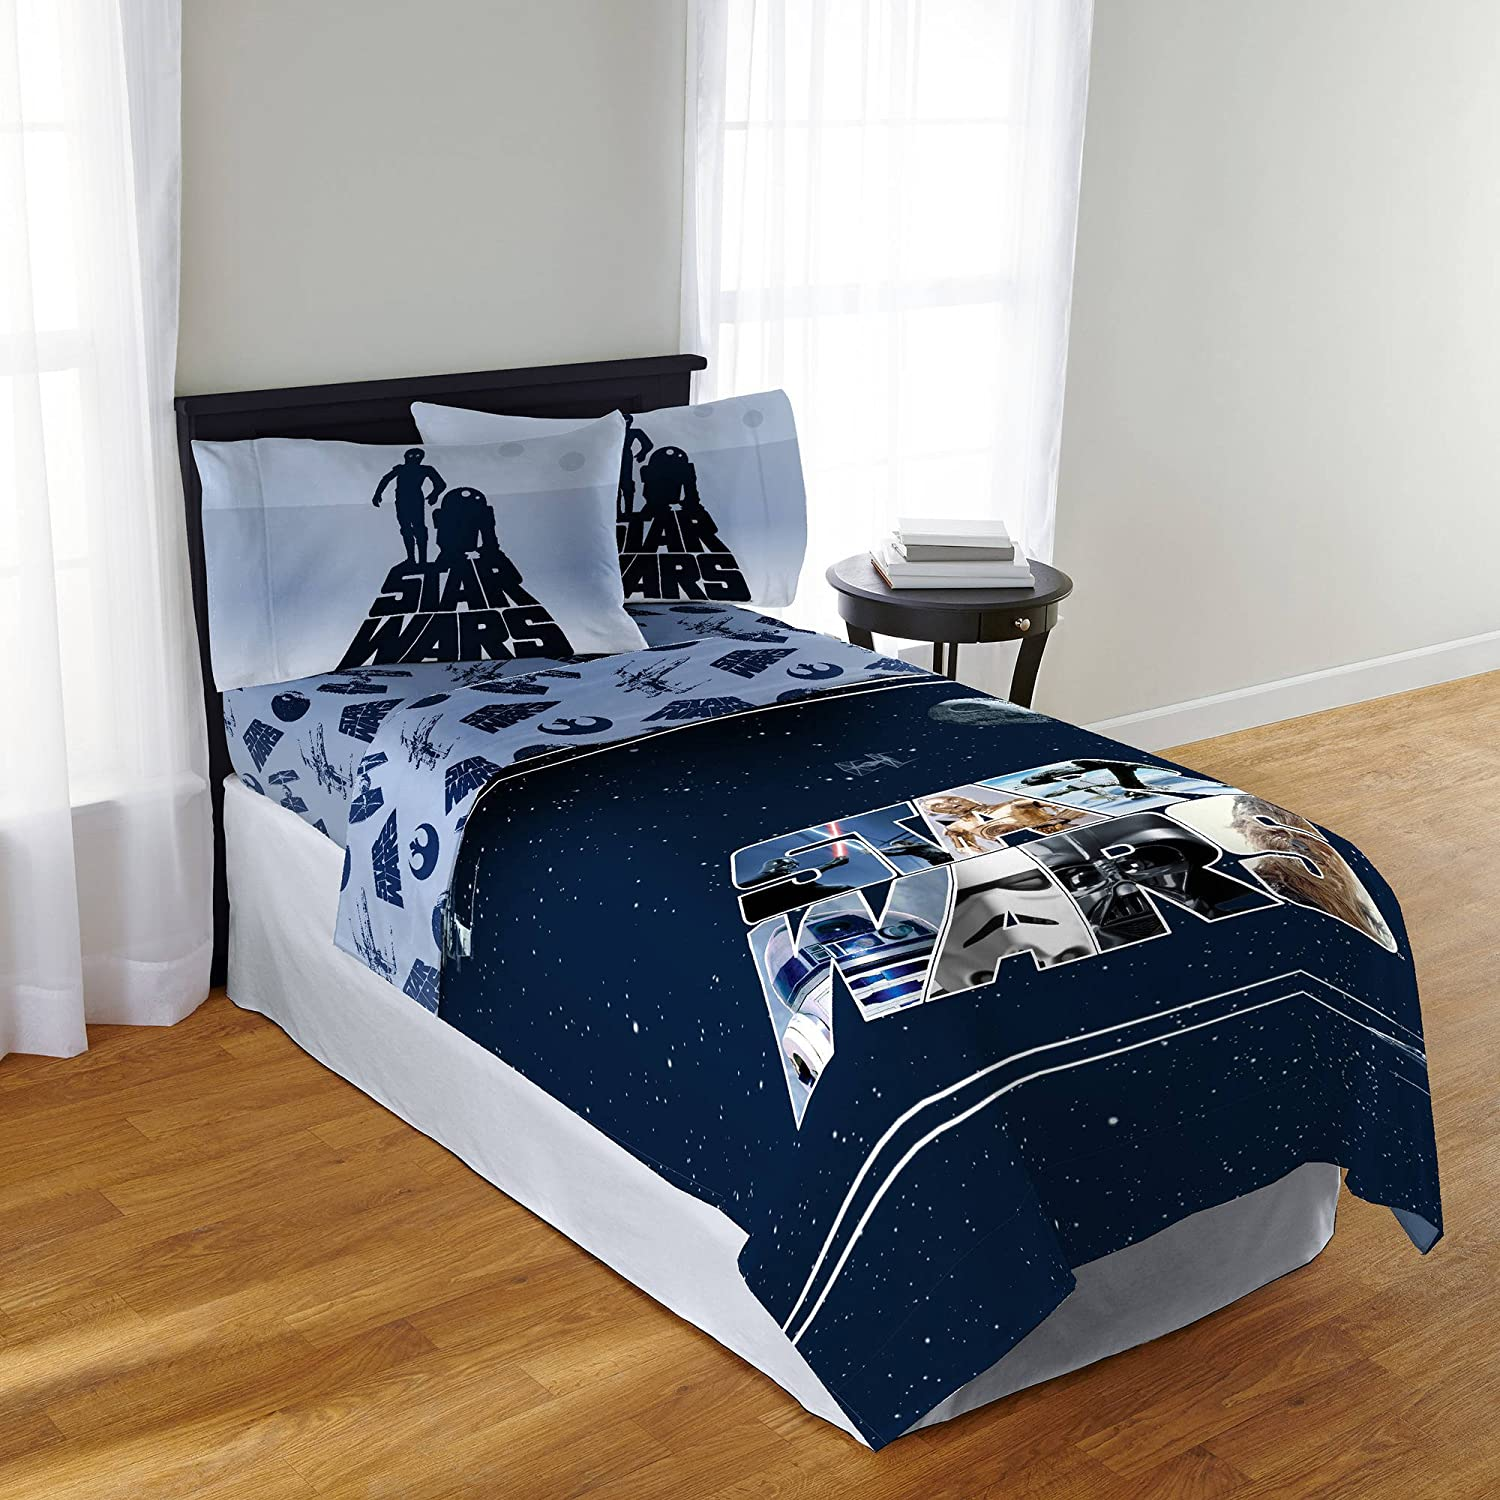 Star Wars 'Space Logo' Sheet Set - R2D2 and C3PO - Soft and Comfortable Microfiber Sheets Full